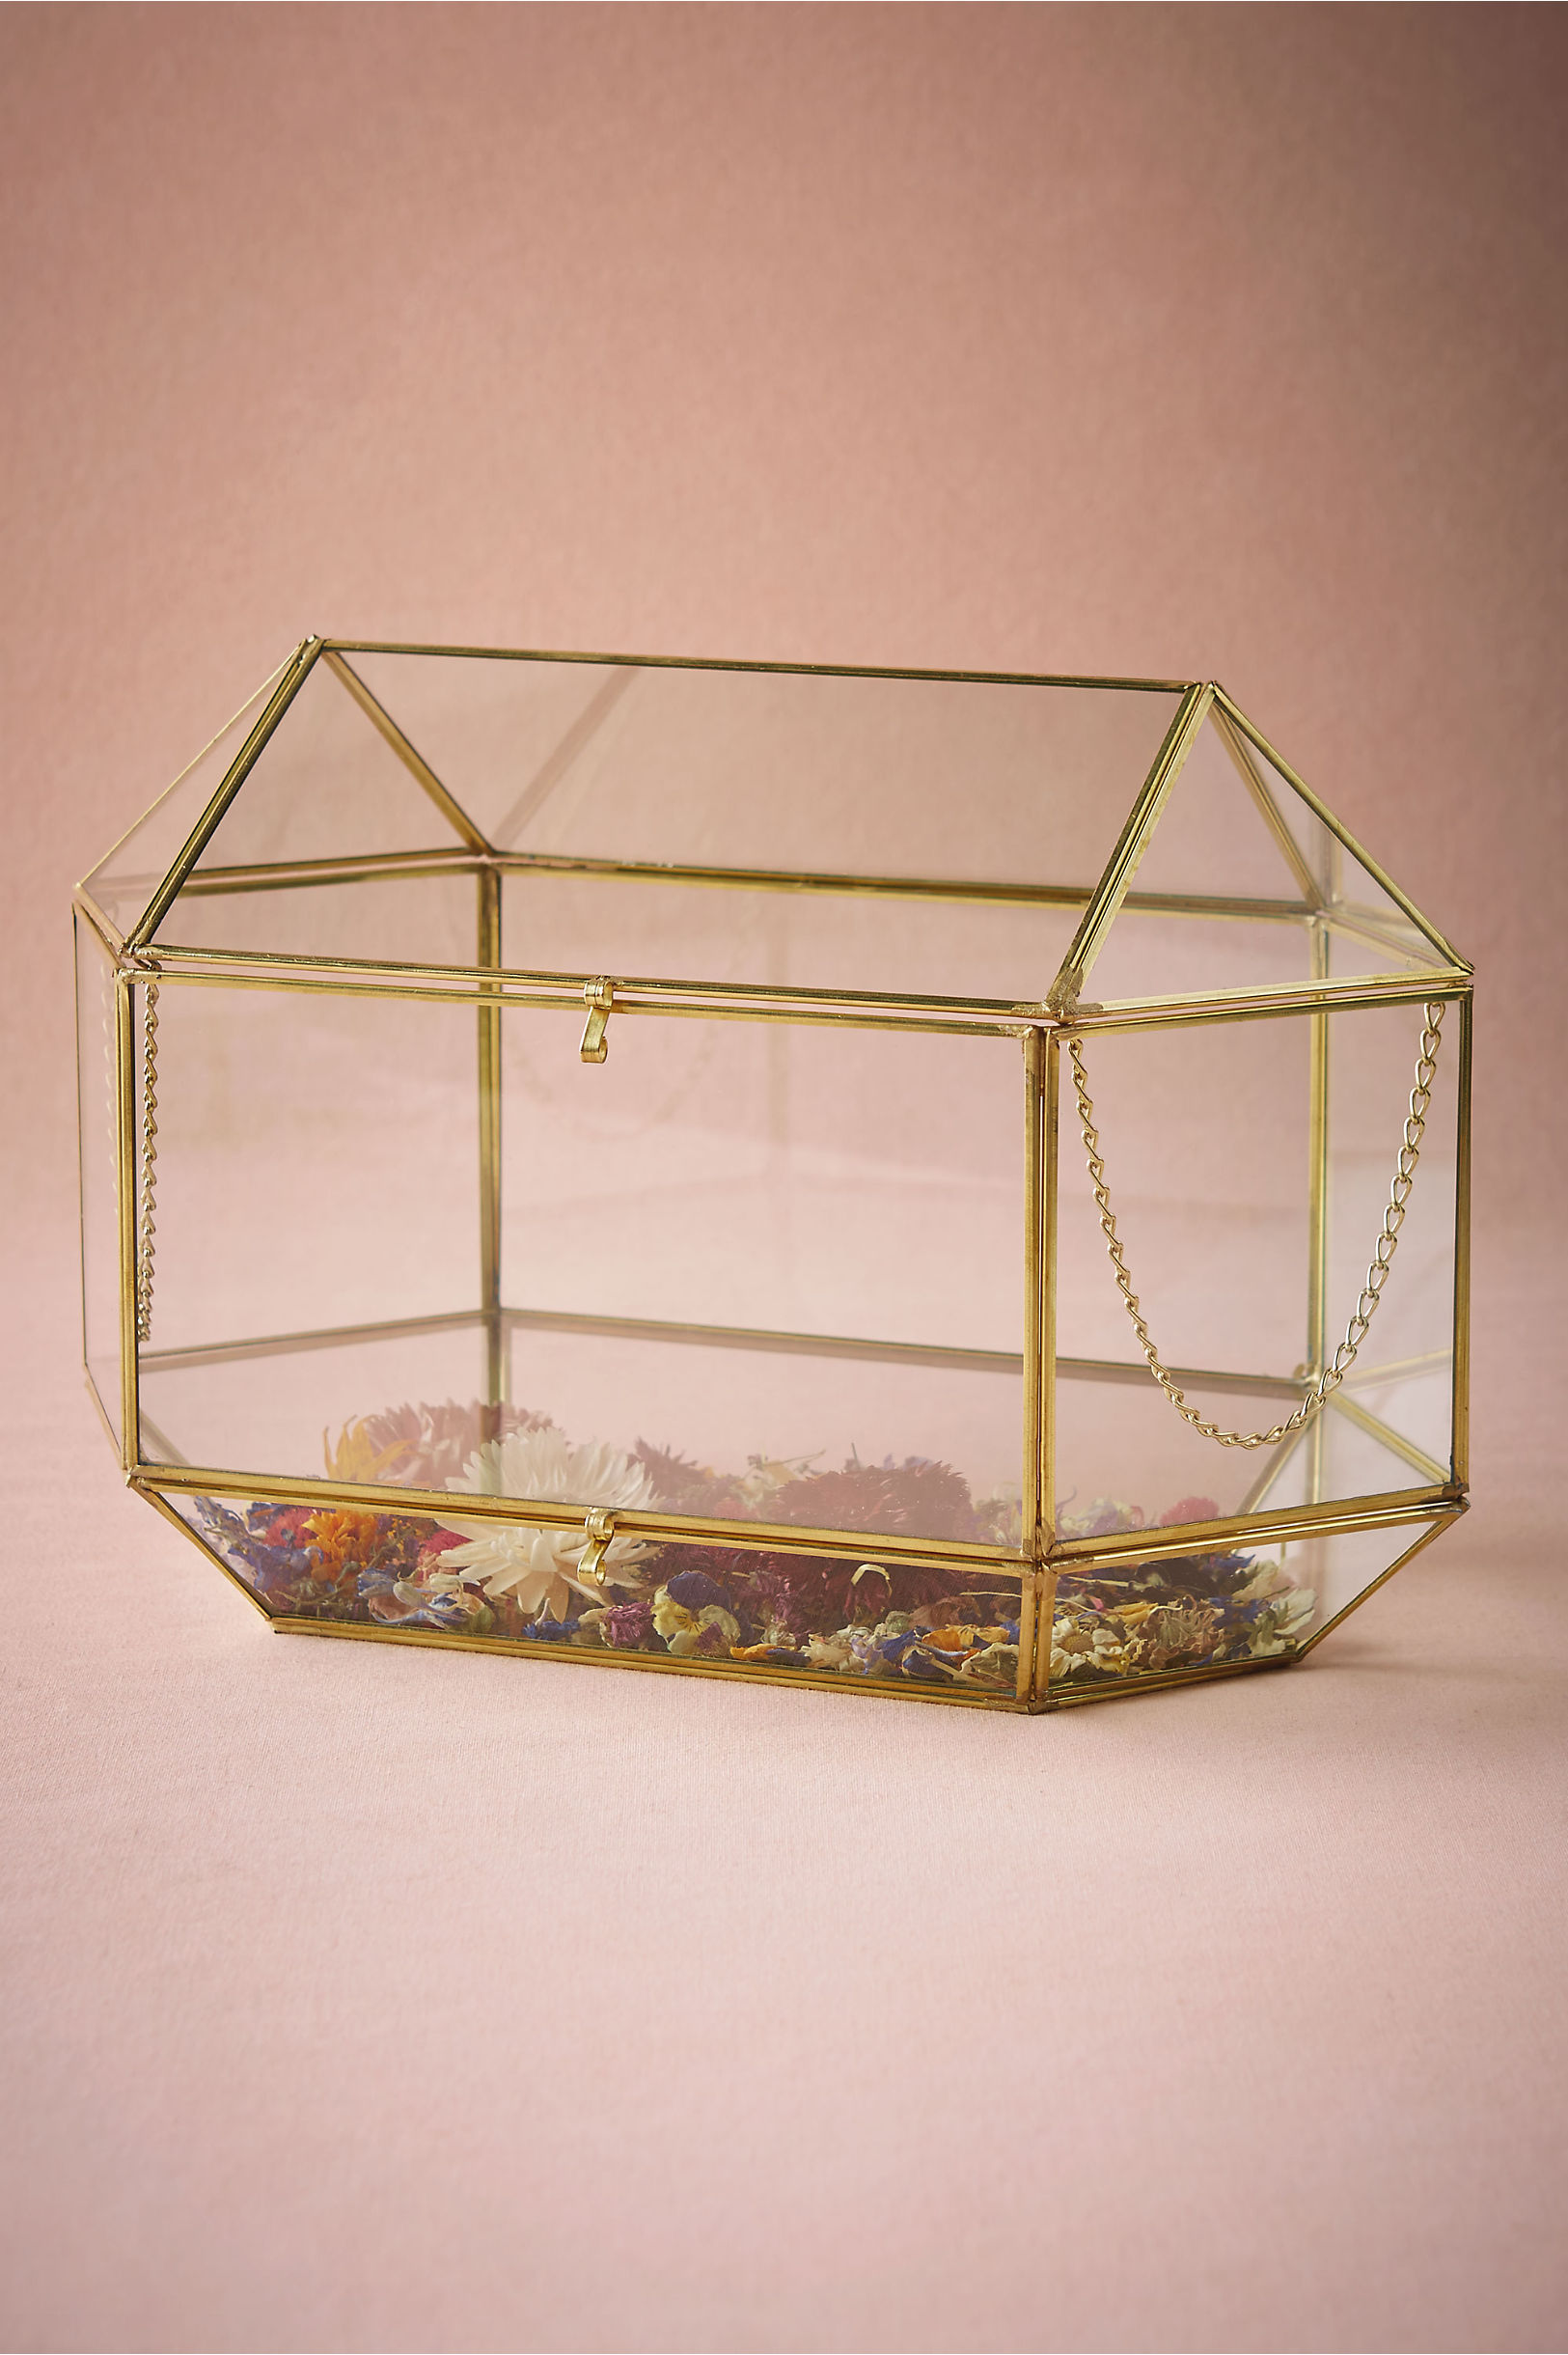 Conservatory Envelope Holder in Décor & Gifts | BHLDN